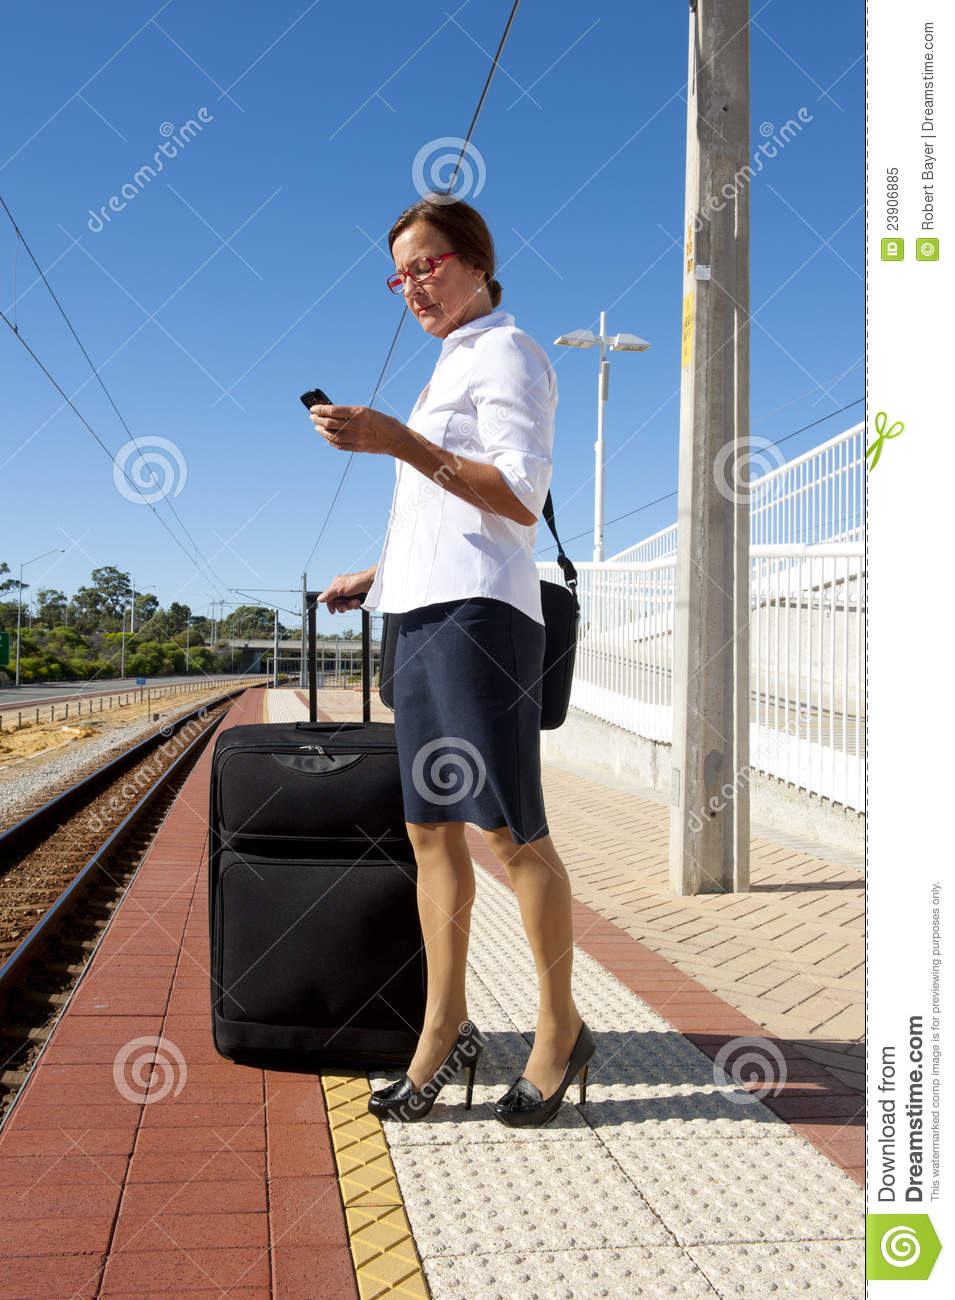 Businesswoman ... - Businesswoman On Platform At Train Station Royalty Free Stock